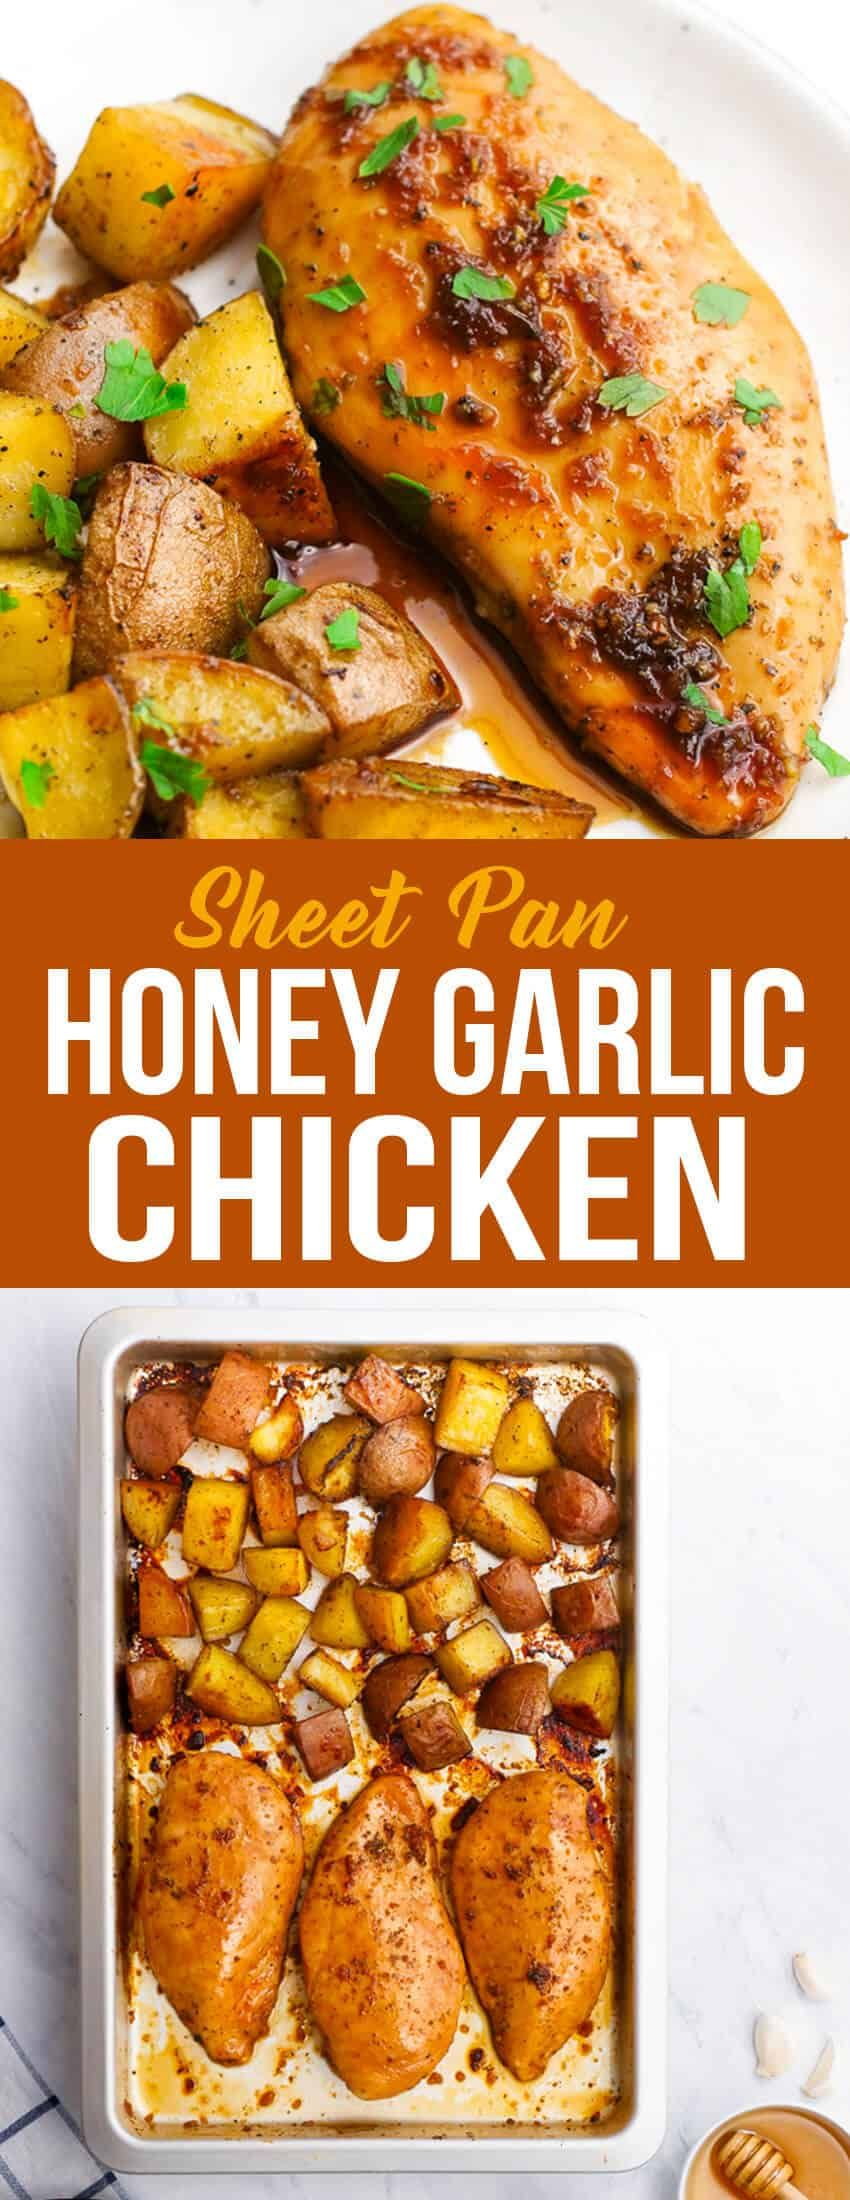 This sheet pan honey garlic chicken is a simple dish with tons of flavor. #sheetpandinner #chicken #sheetpanchicken #honeygarlicchicken #honeygarlic